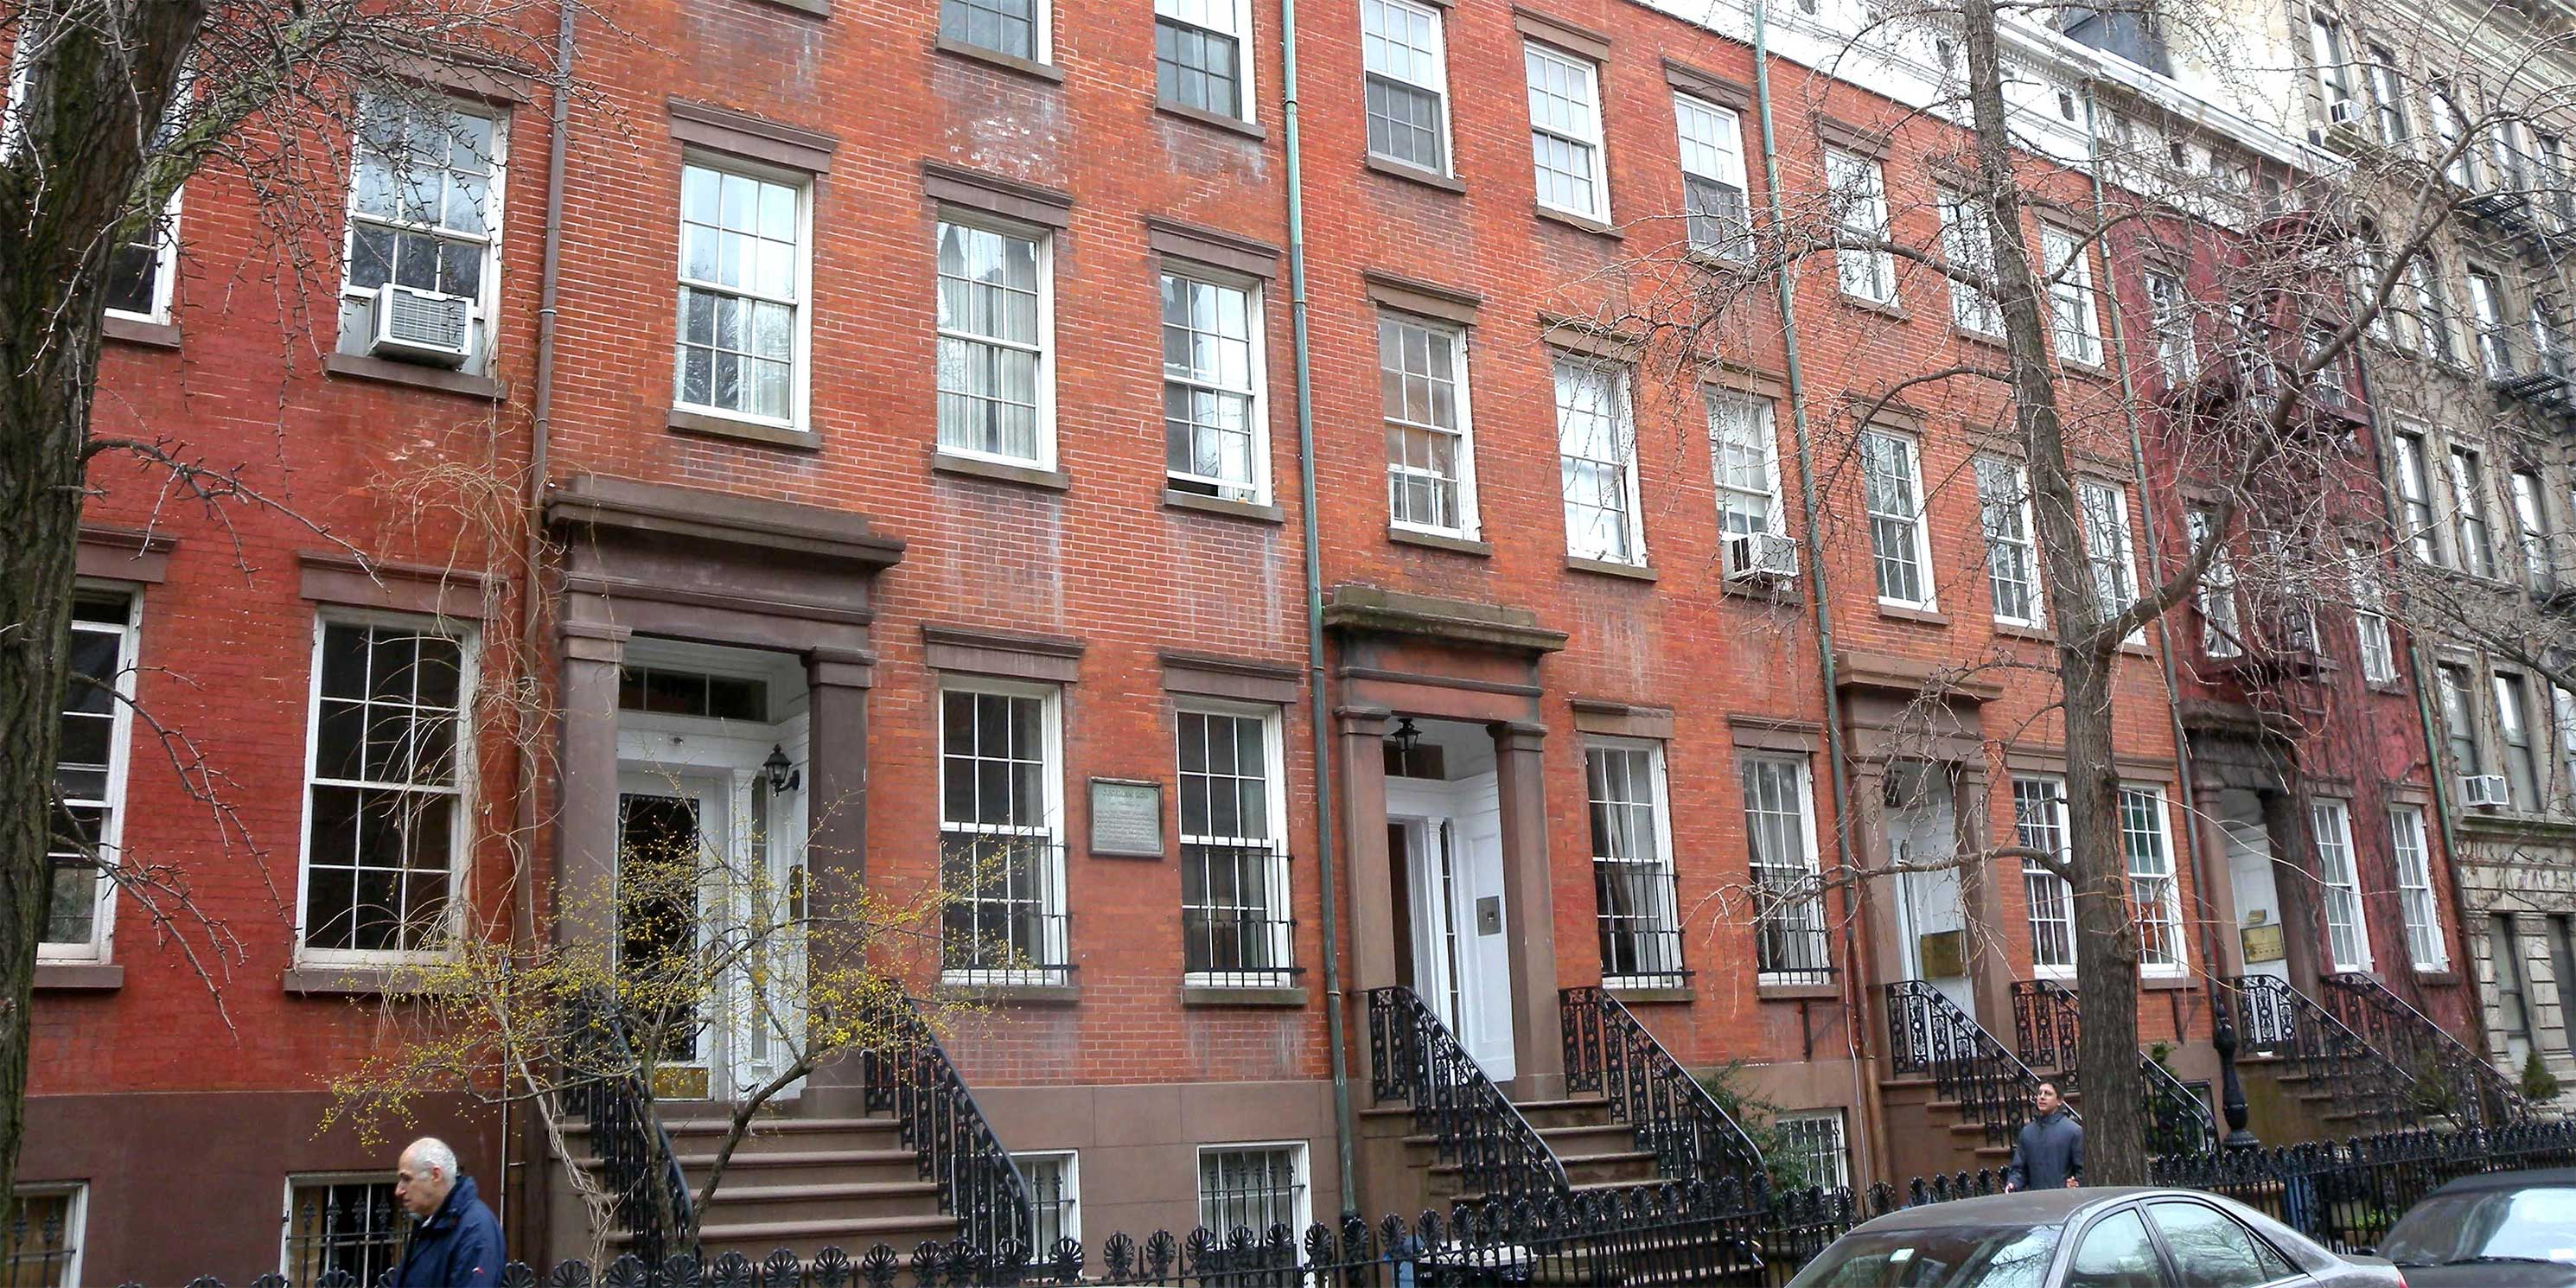 row houses on Cushman Row in Chelsea